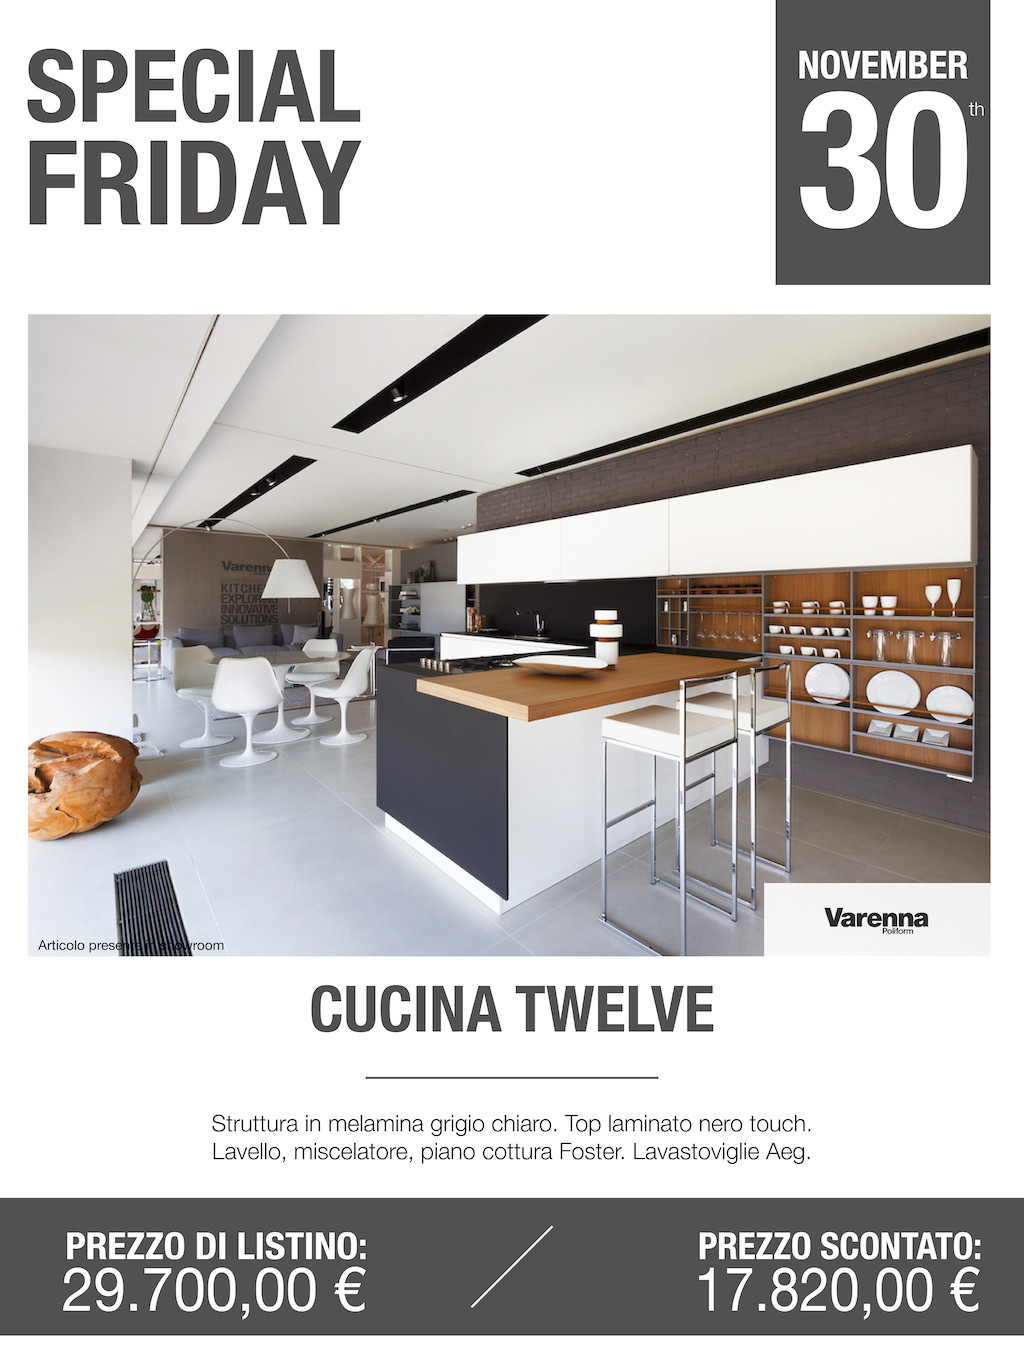 cucina Twelve Special Friday